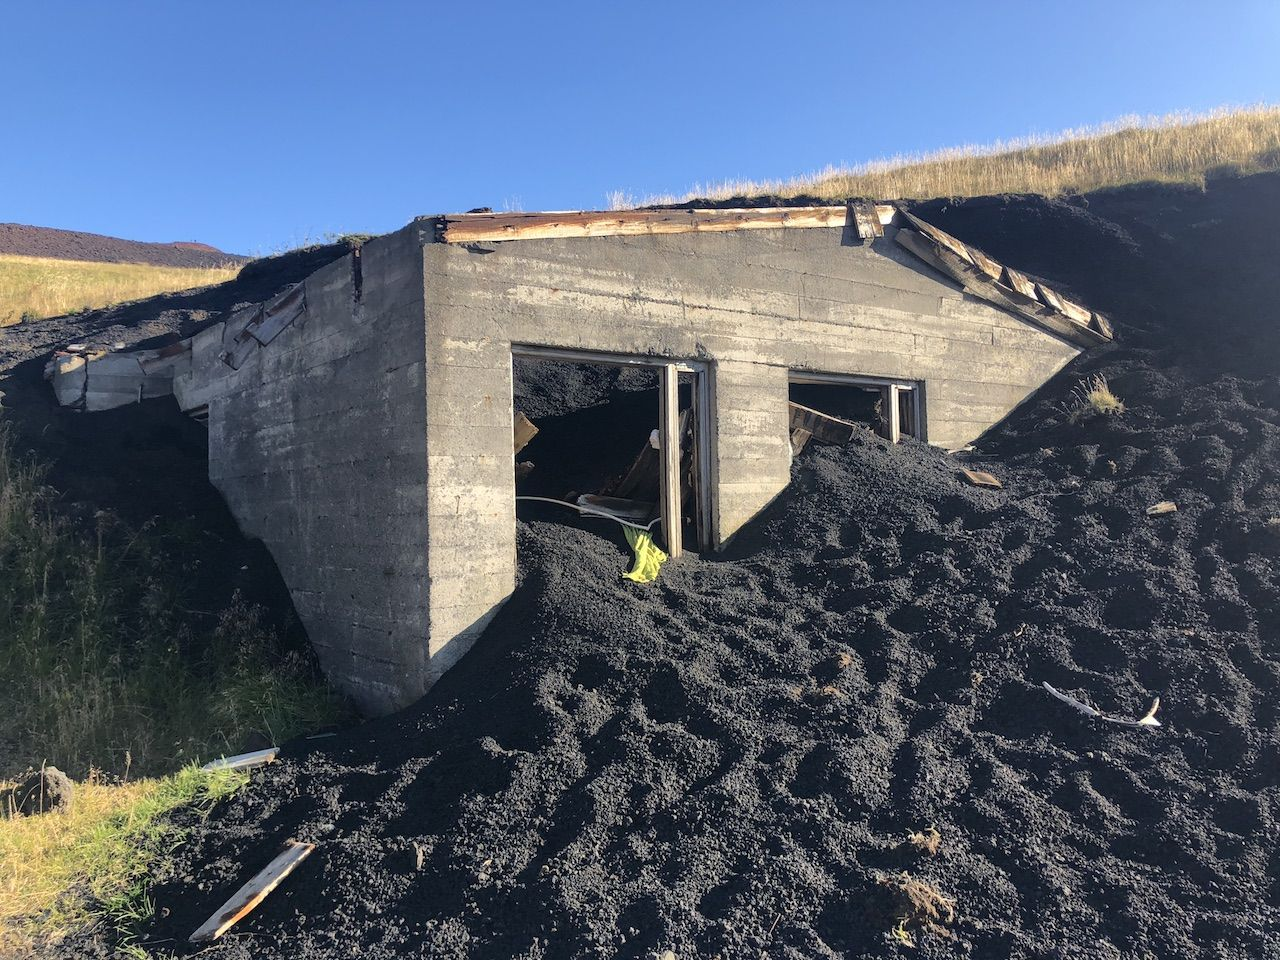 Building buried in ash at the Eldfell volcano in Iceland